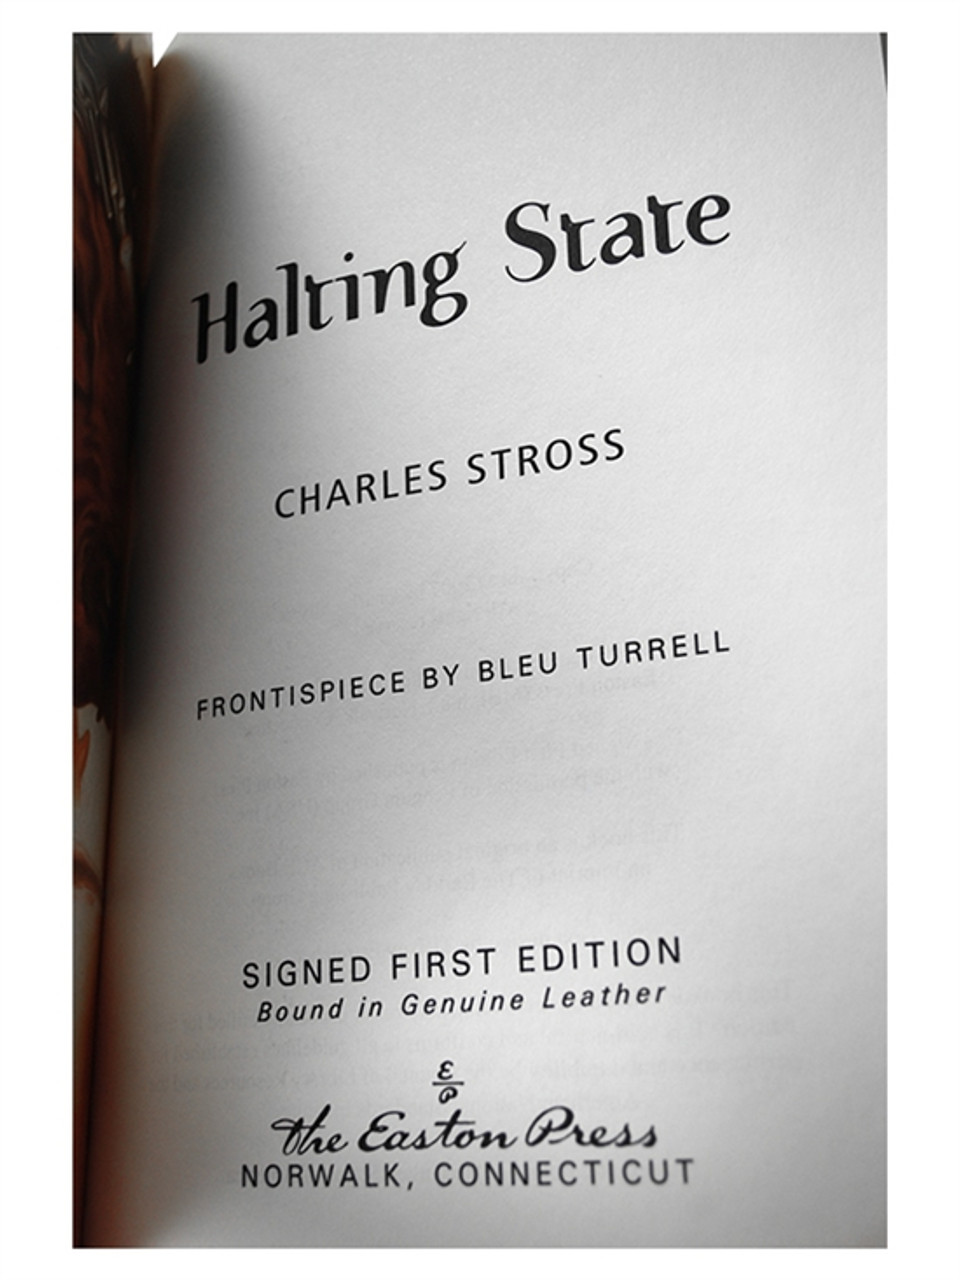 """Easton Press """"Halting State"""" Charles Stross, Signed First Edition of 900 Copies, Leather Bound [Very Fine]"""